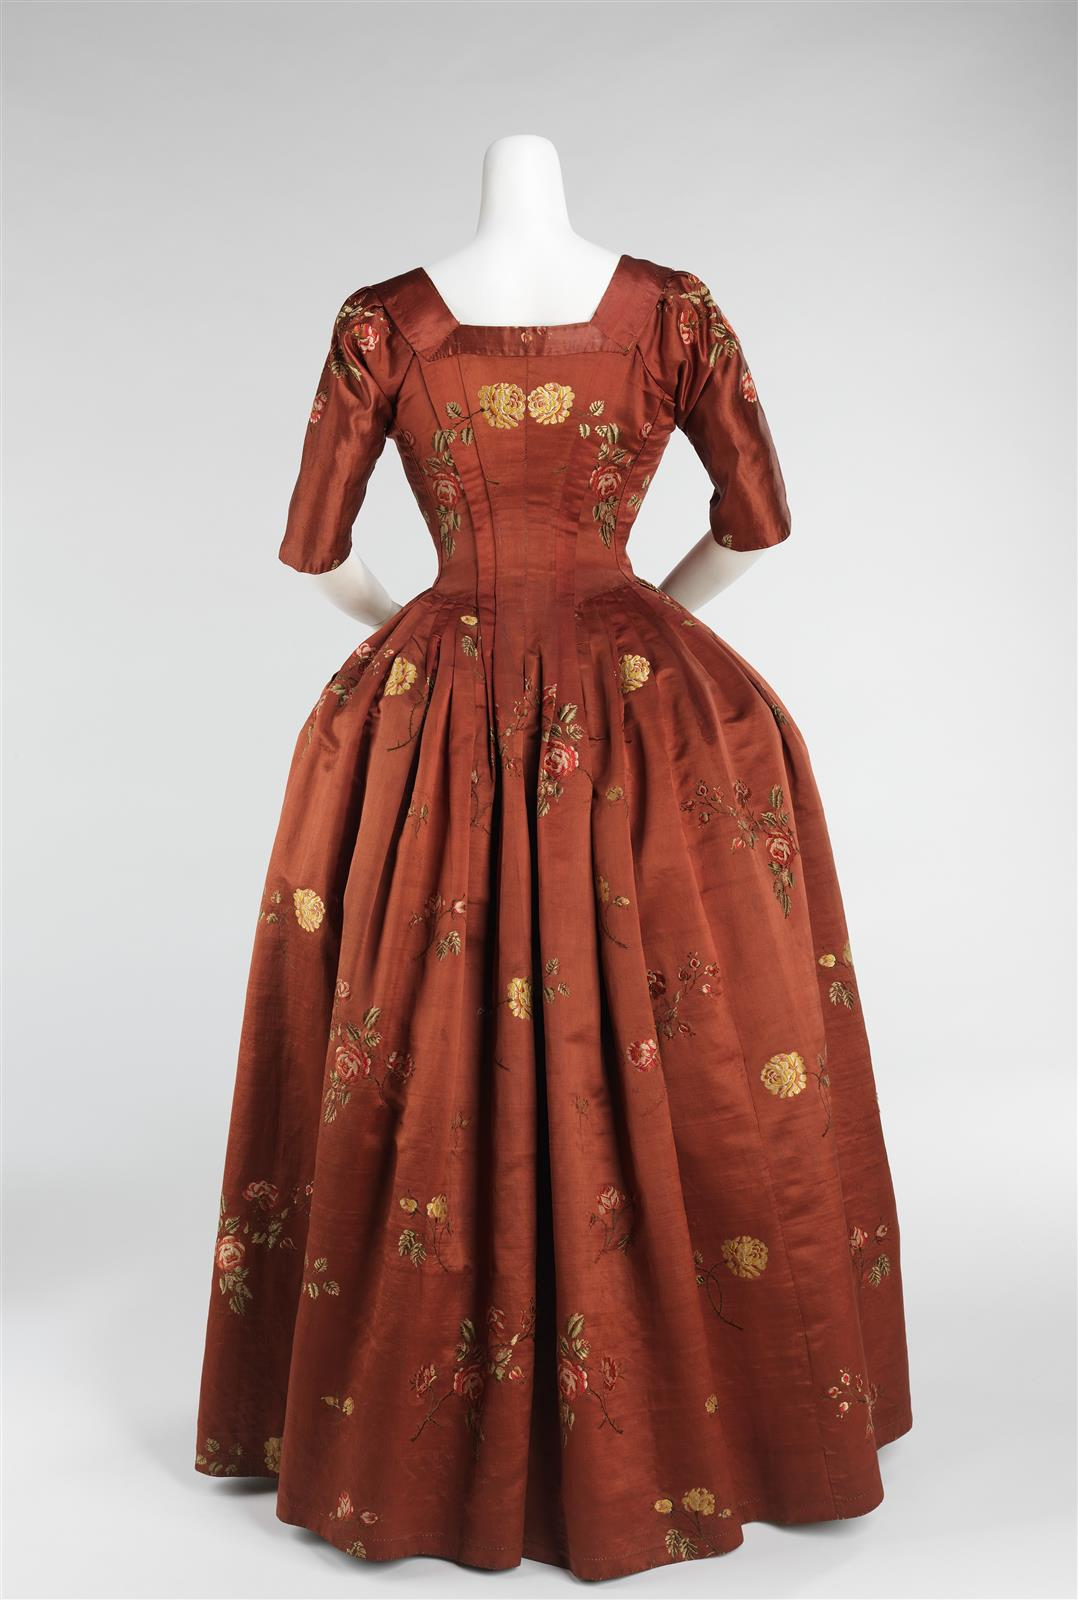 1750. Robe à l'Anglaise. British. Silk